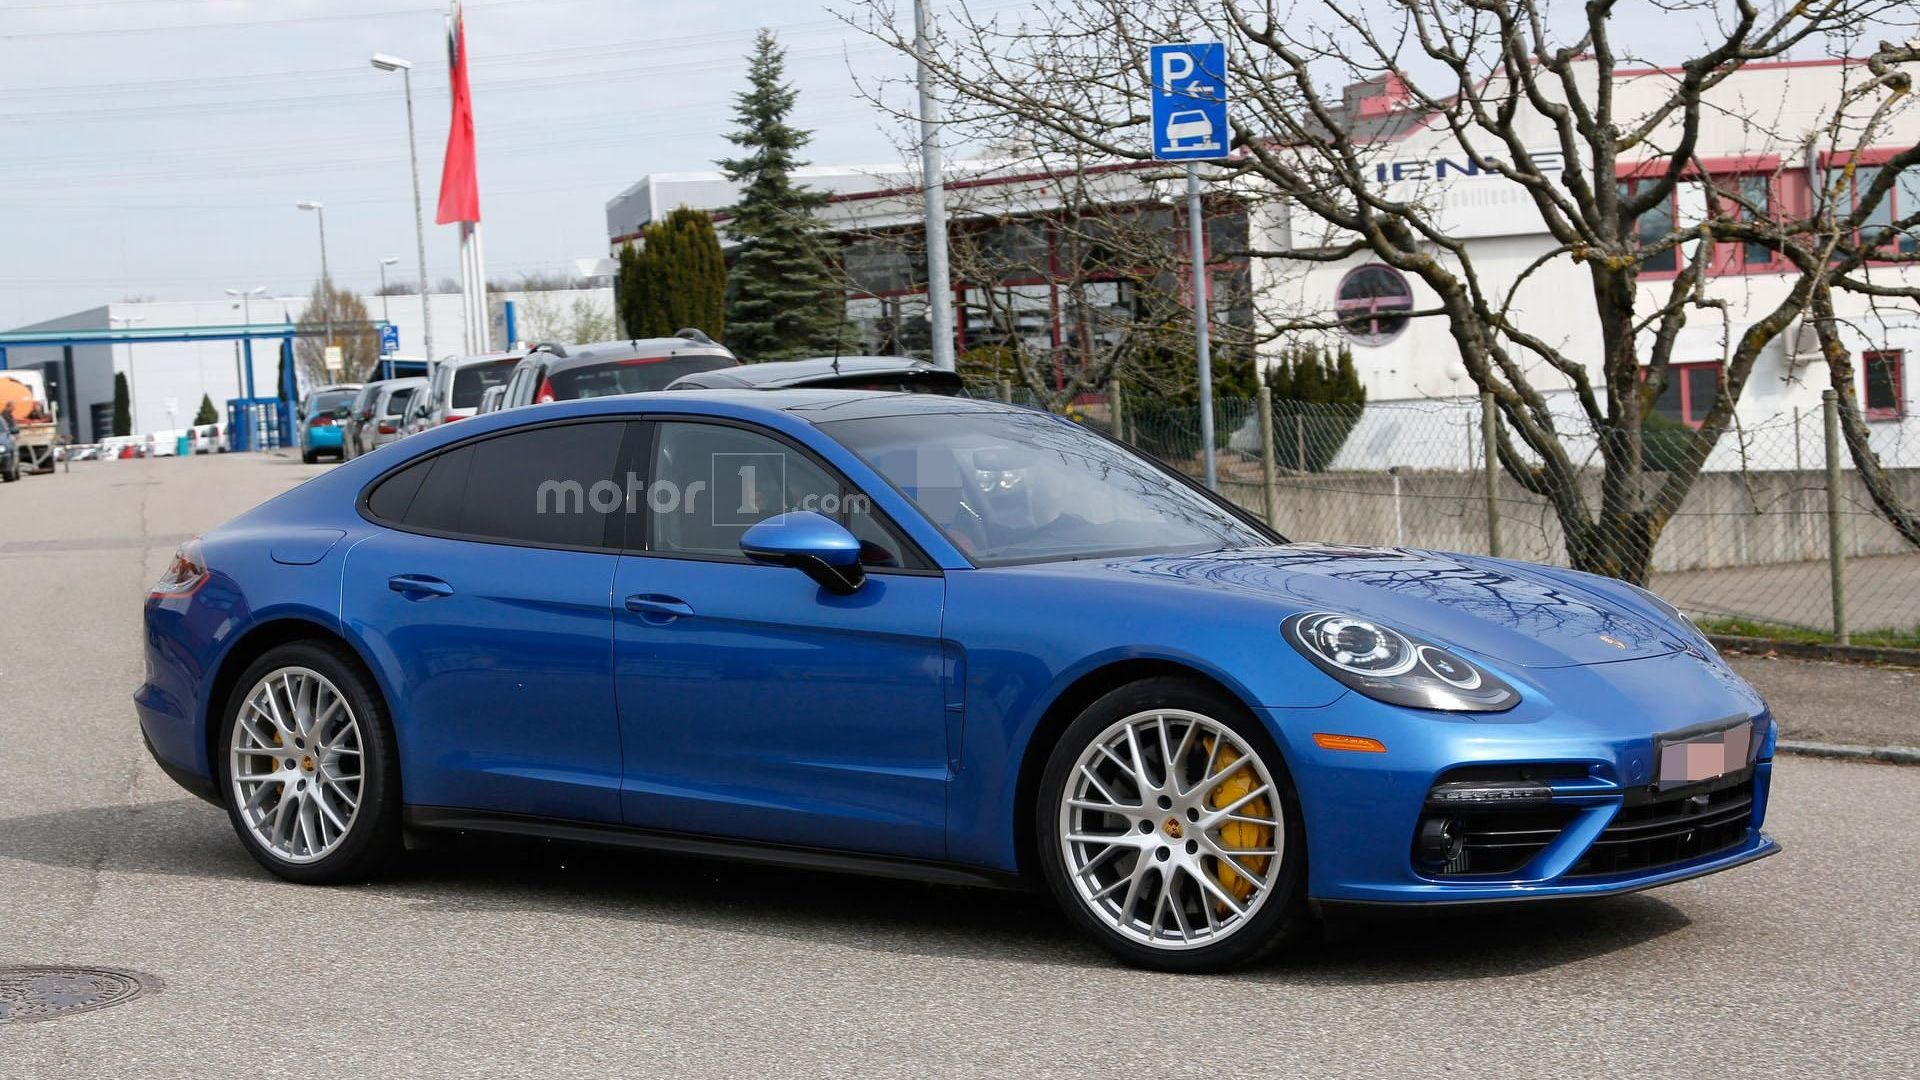 2017 Porsche Panamera Turbo S photo - 2